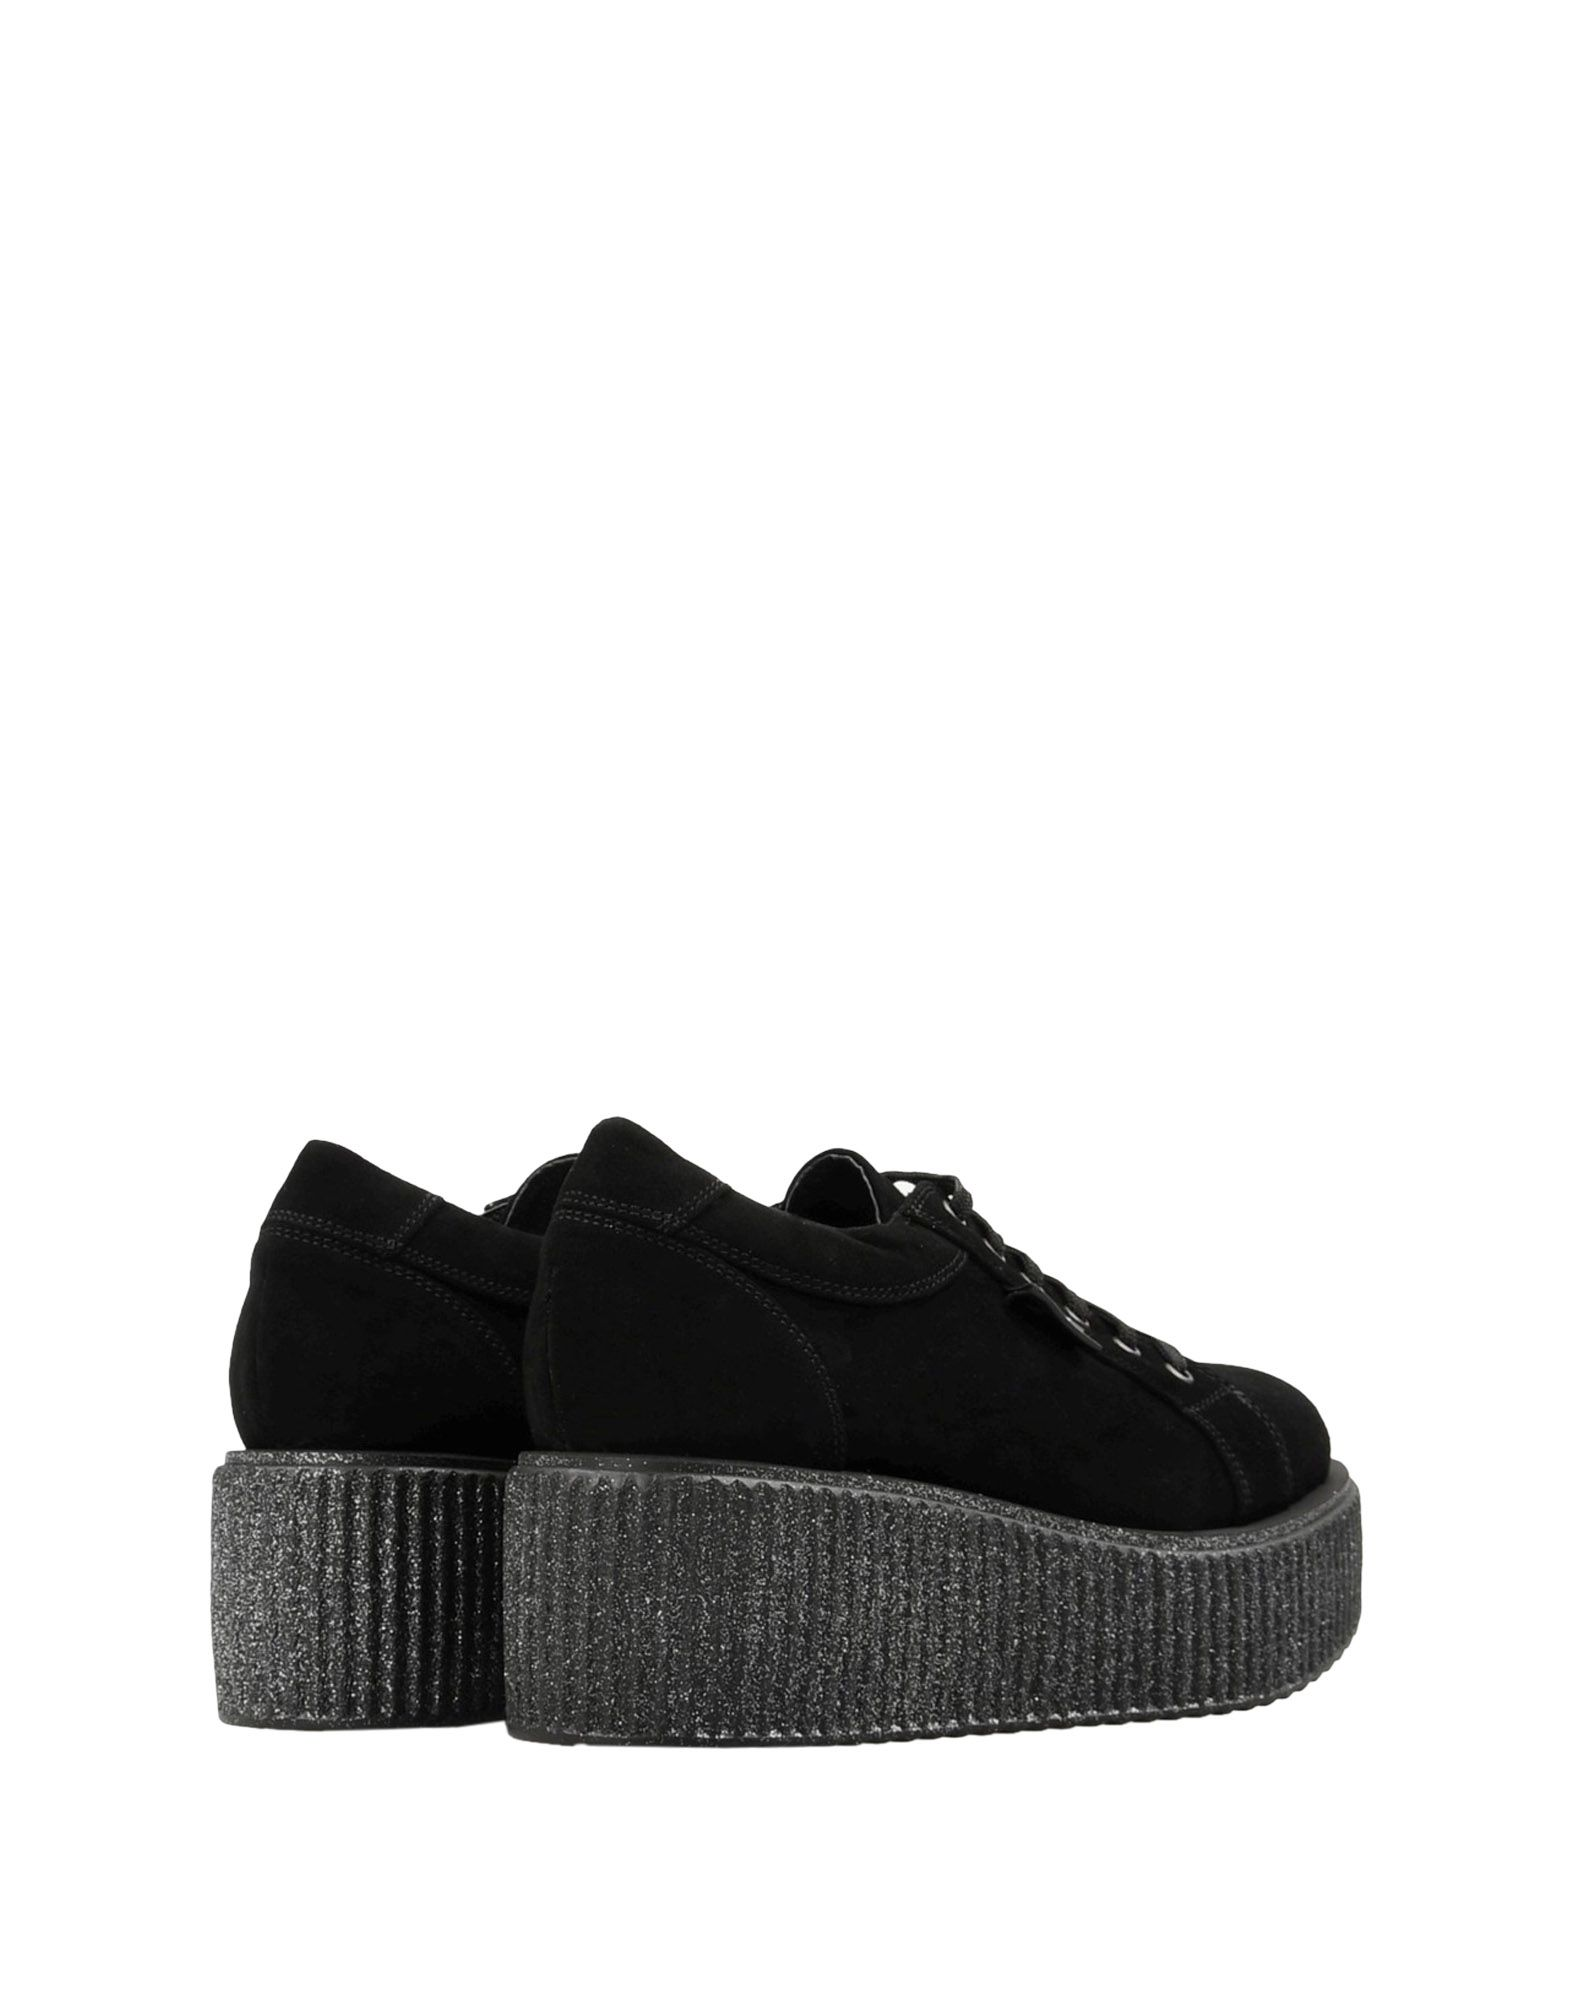 CHAUSSURES - Chaussures à lacetsKarl Lagerfeld TBzRfozIh7